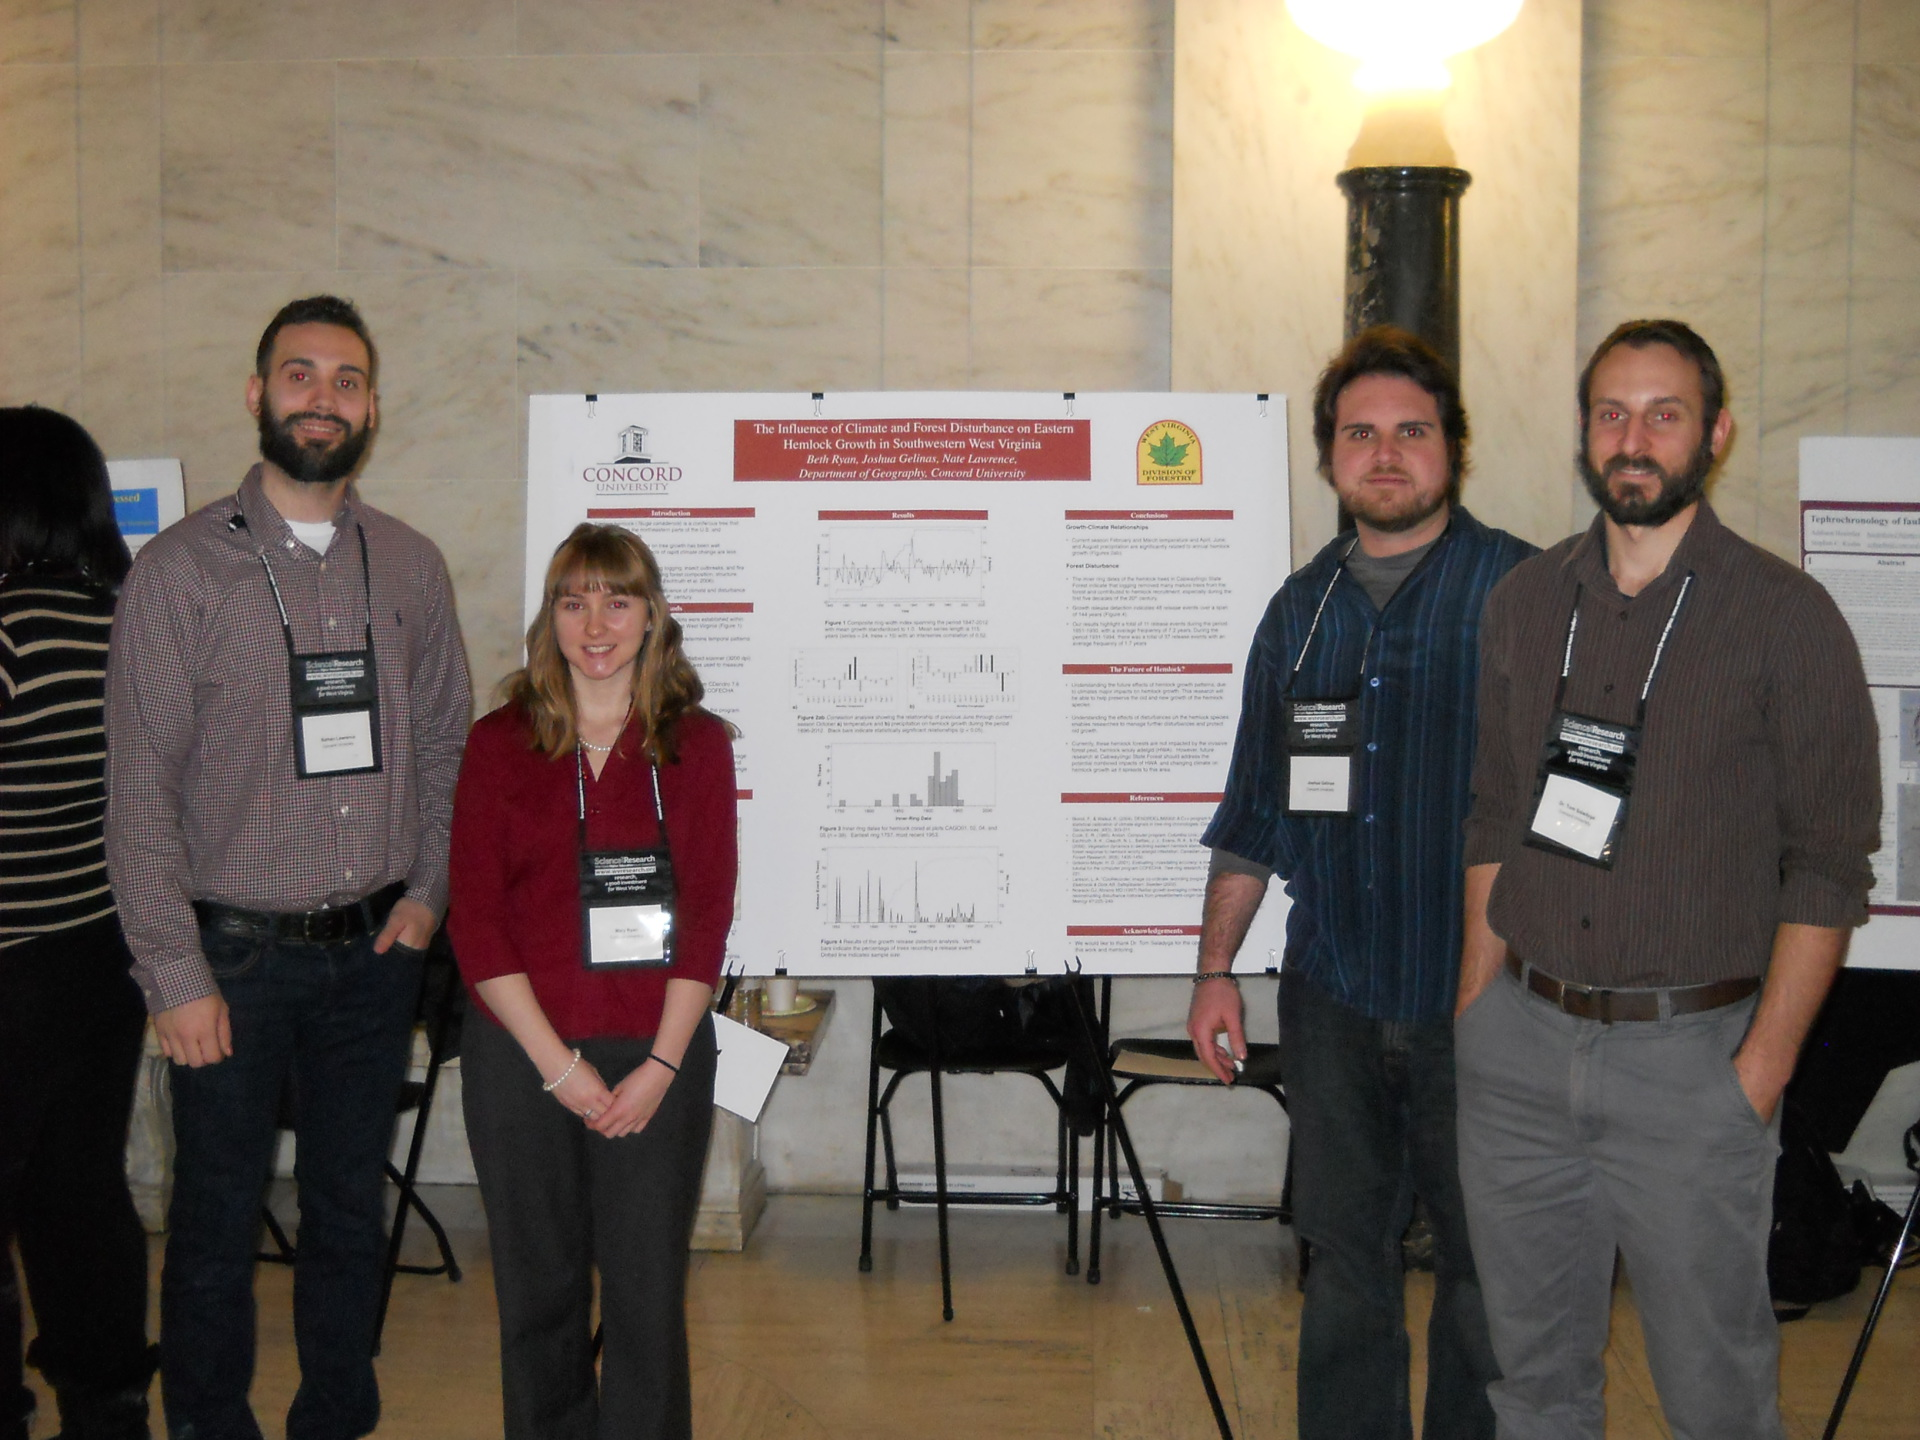 Undergraduate Research Day at the Capitol